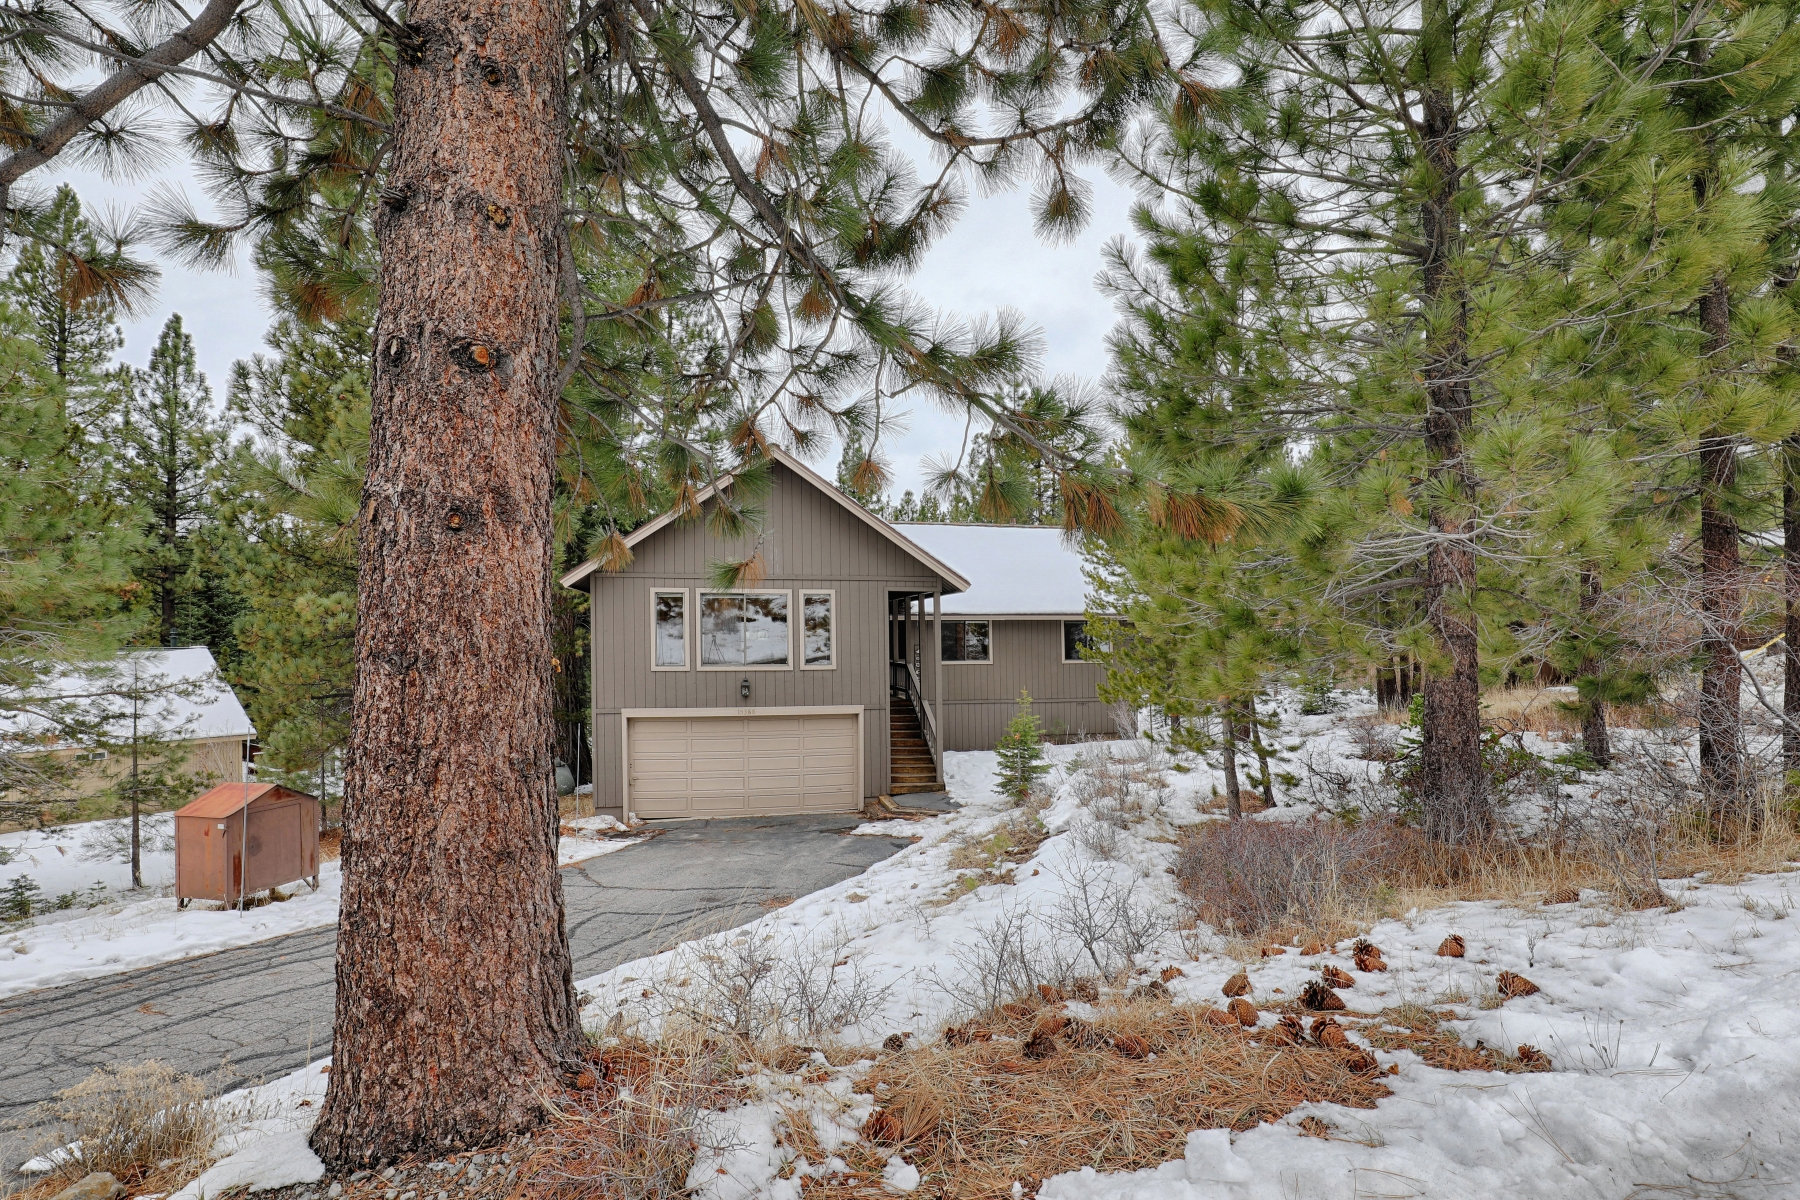 Single Family Home for Active at 15388 Wolfgang Road Truckee, CA 96161 15388 Wolfgang Road Truckee, California 96161 United States